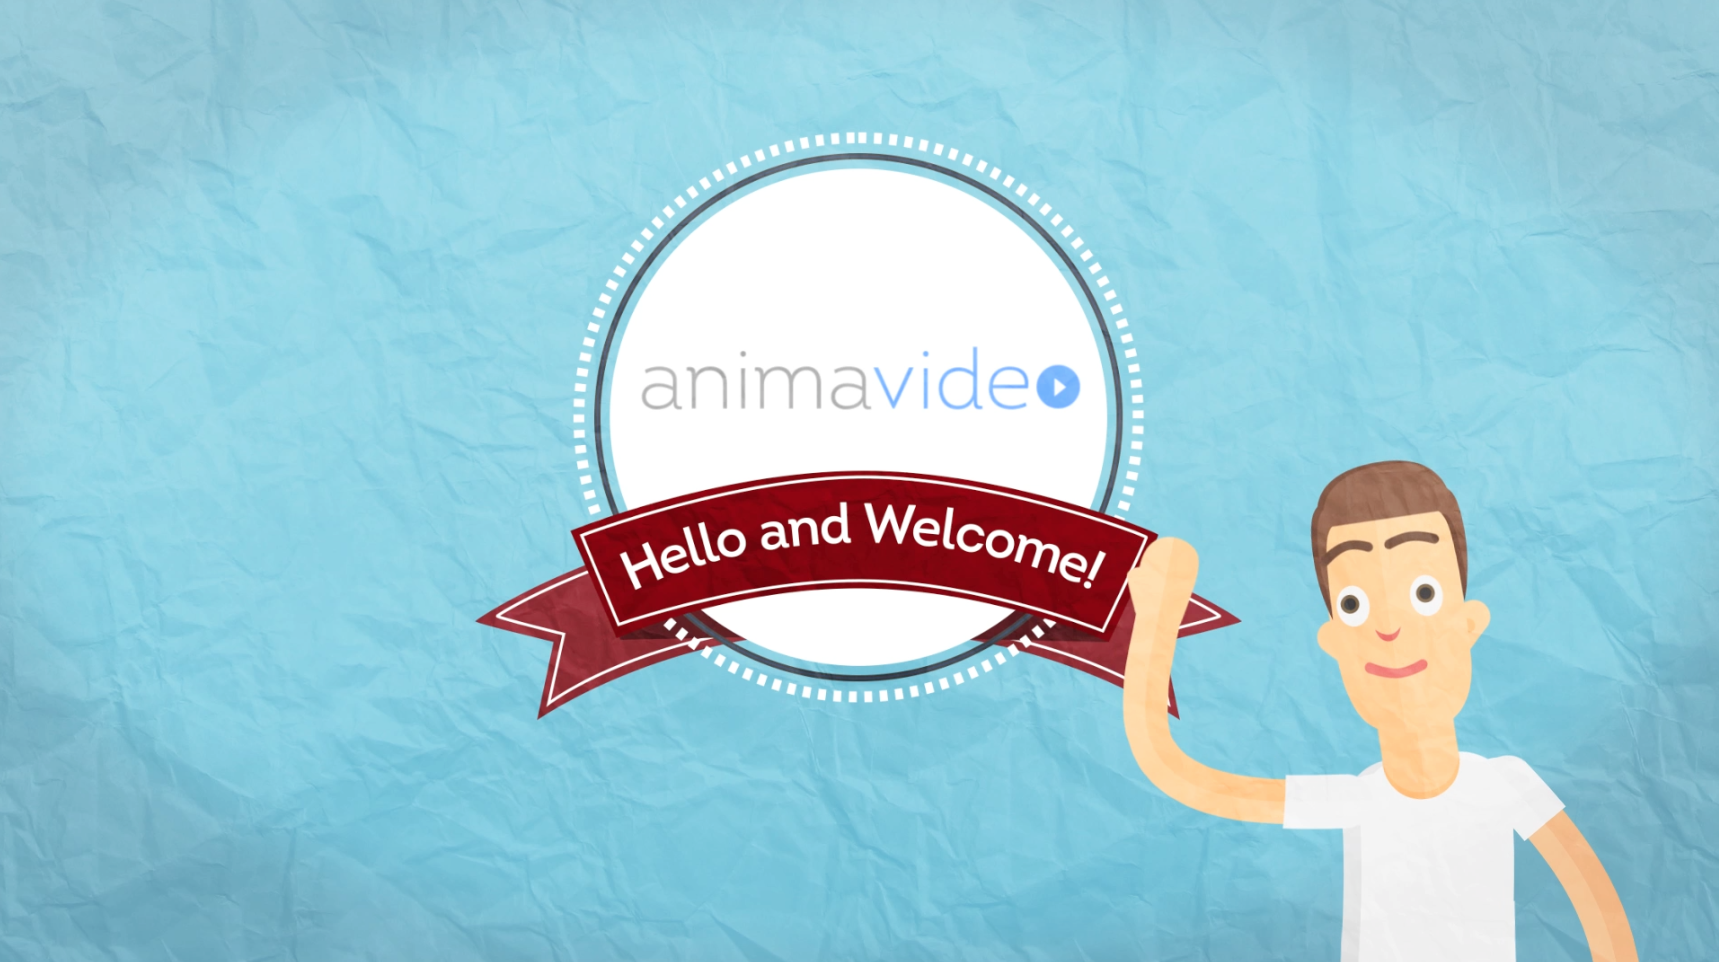 create this eye catching logo animation with funny cartoon character to promote your company